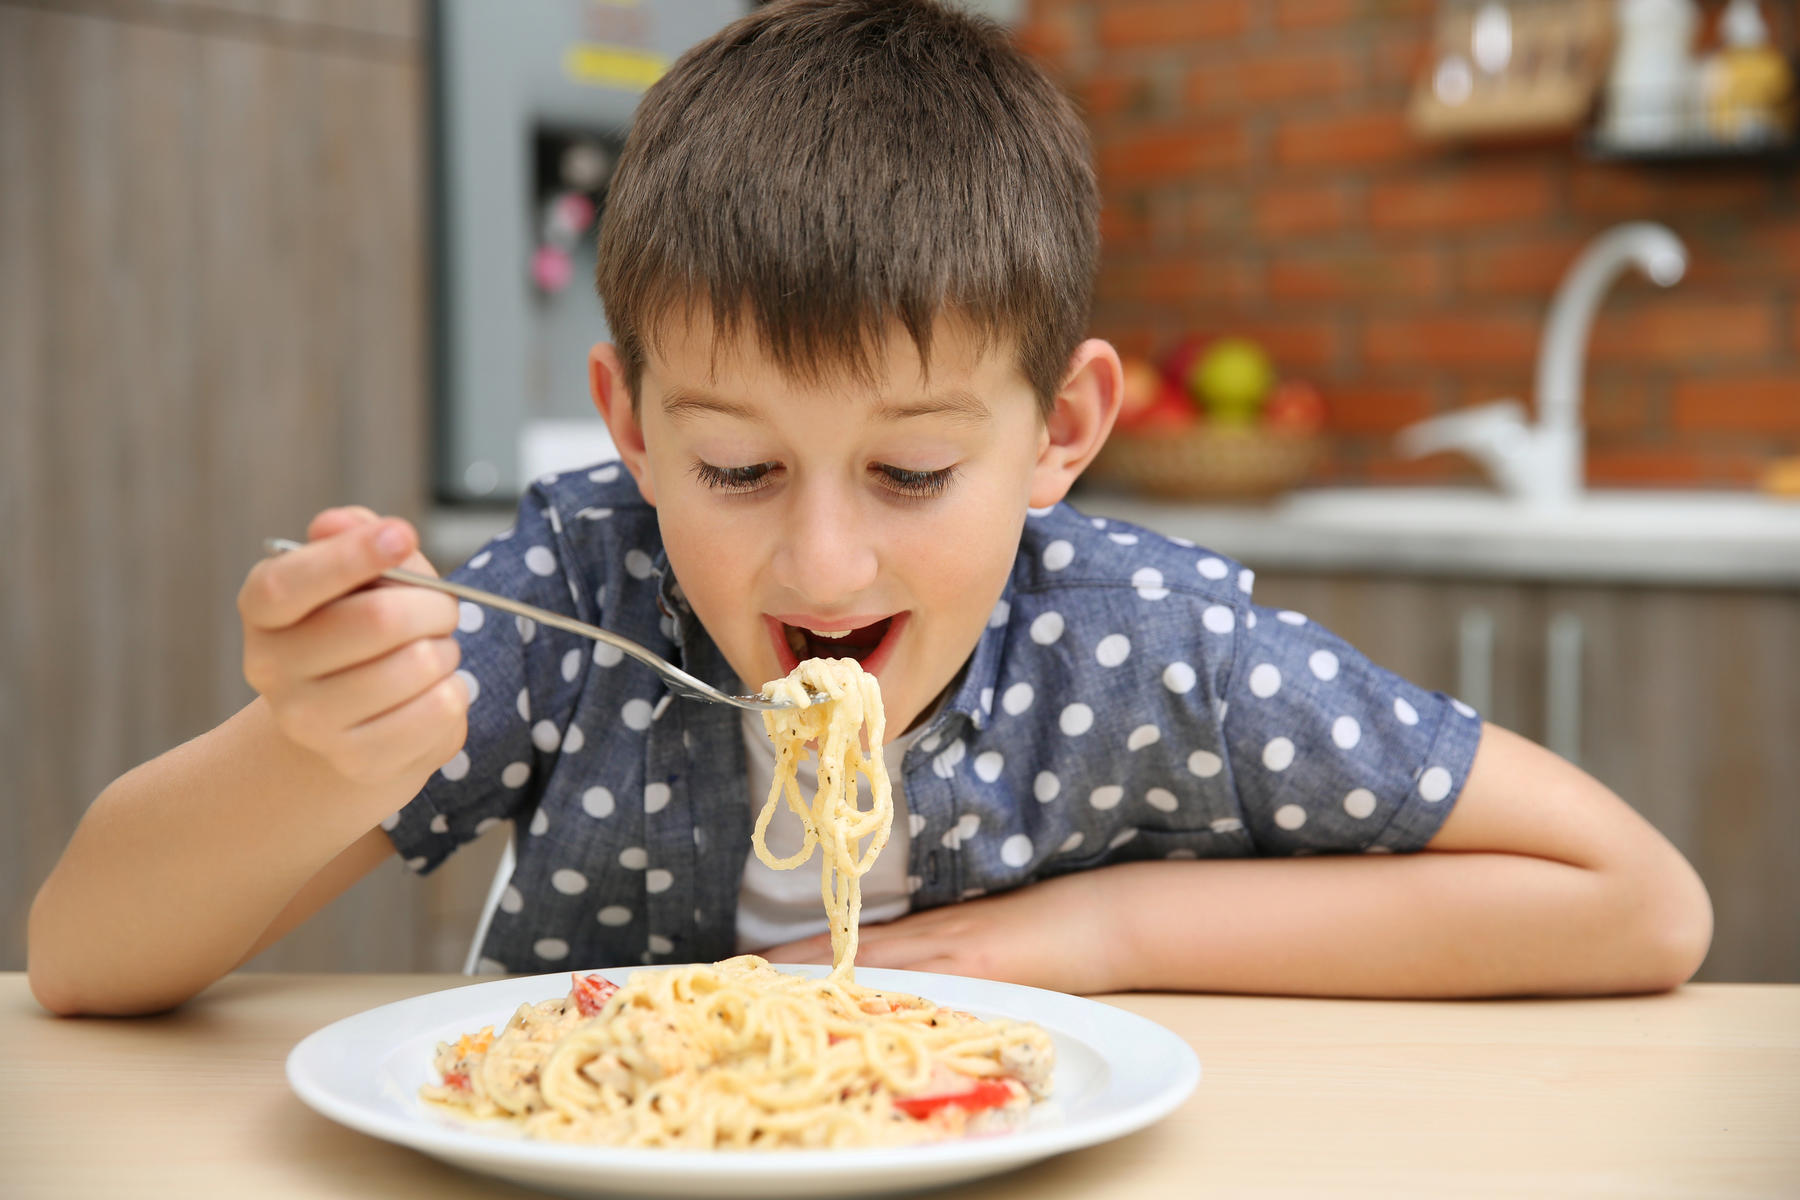 Boy Eating Spaghetti